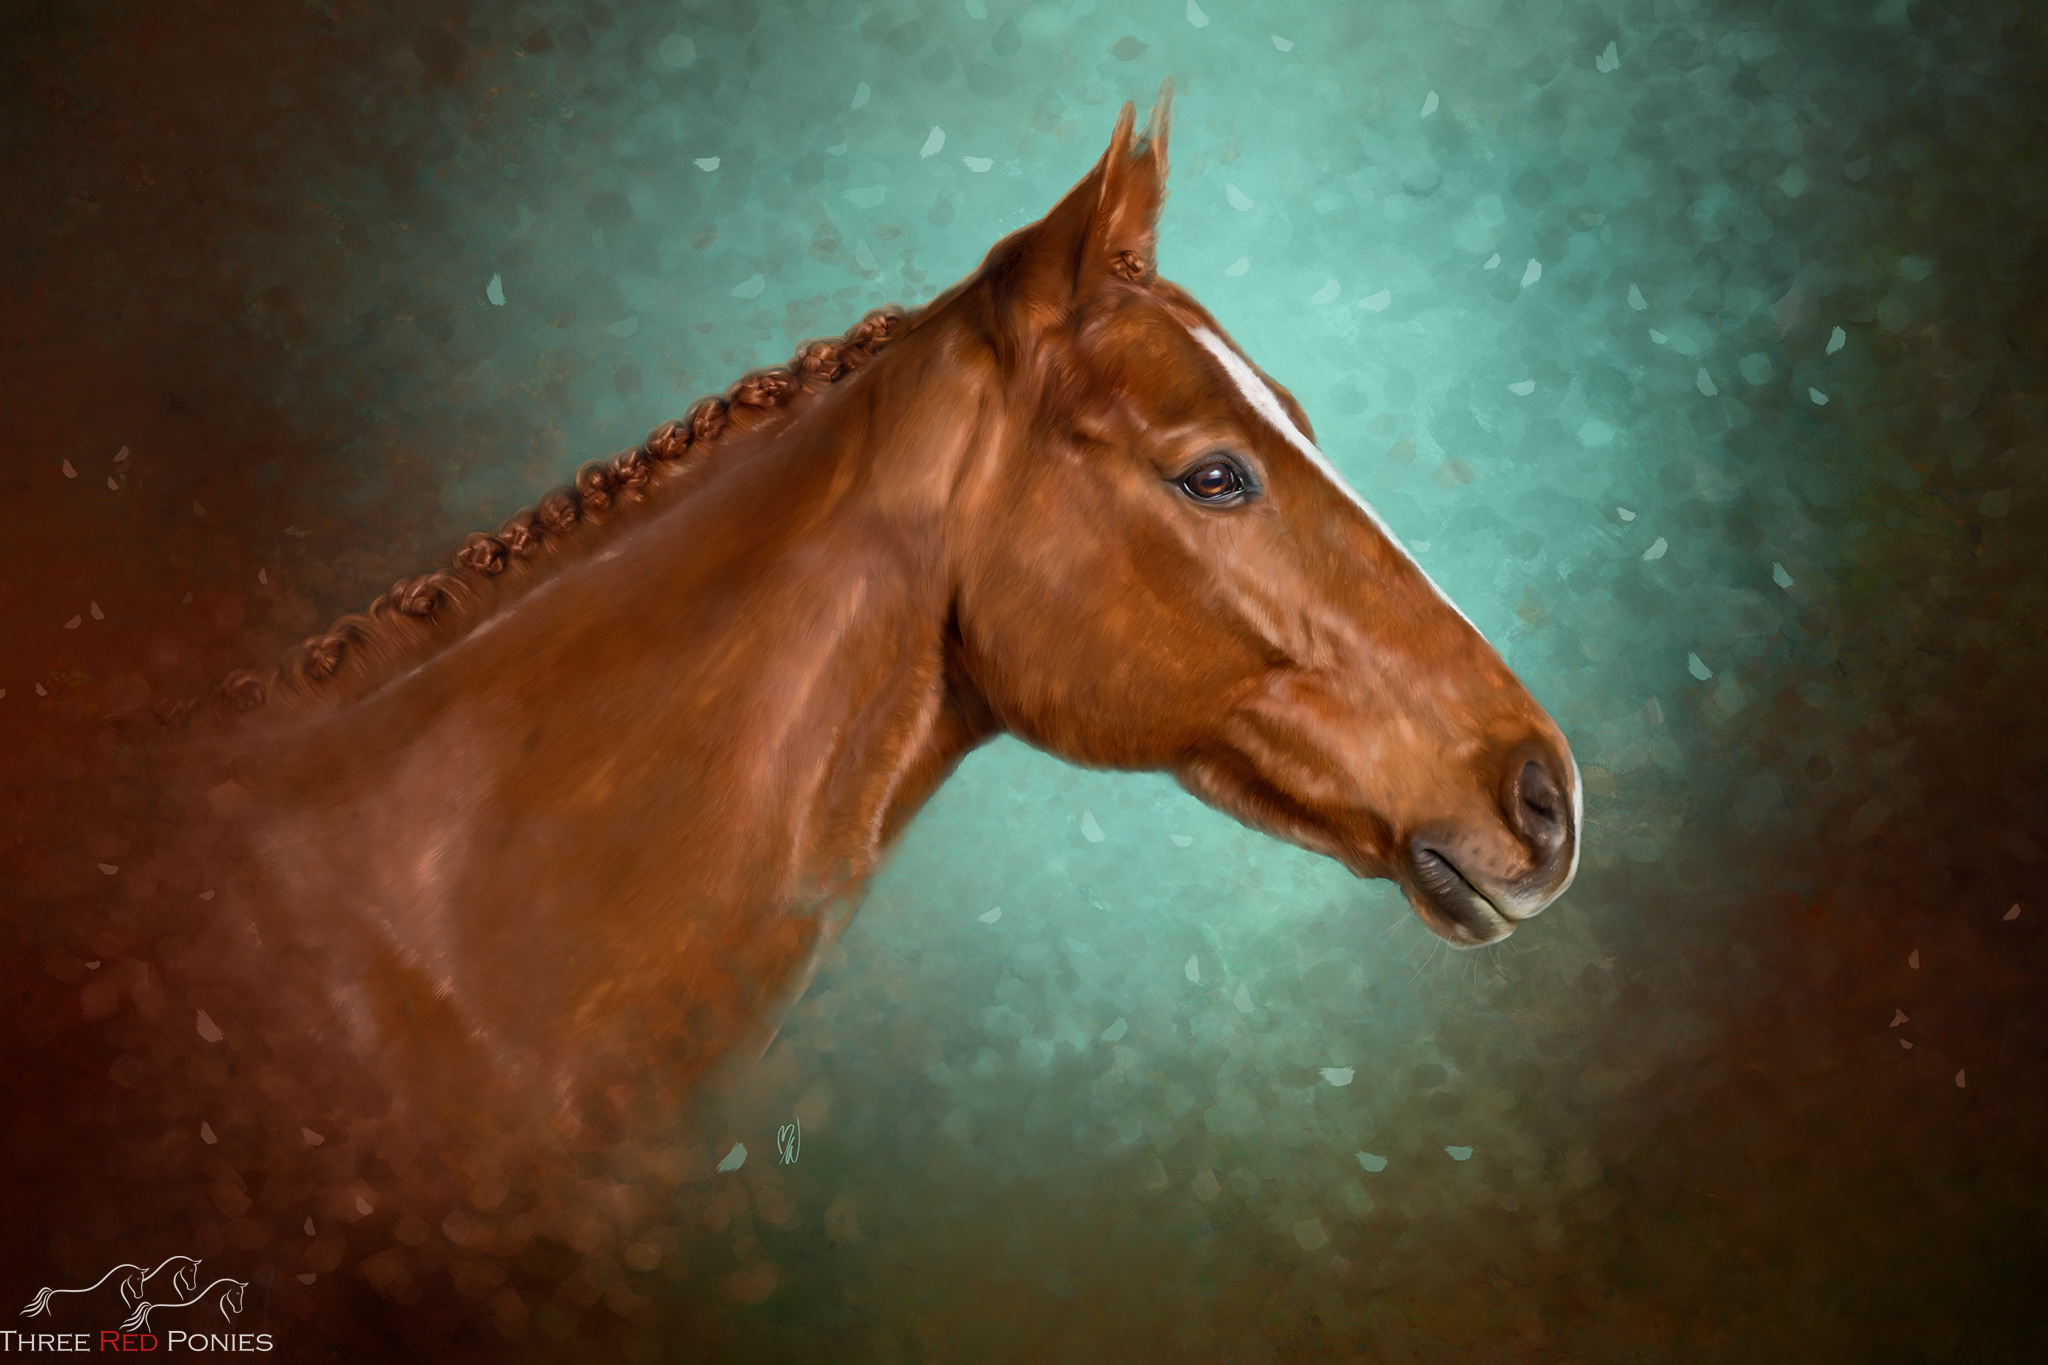 Custom painting of a chestnut thoroughbred horse on green background